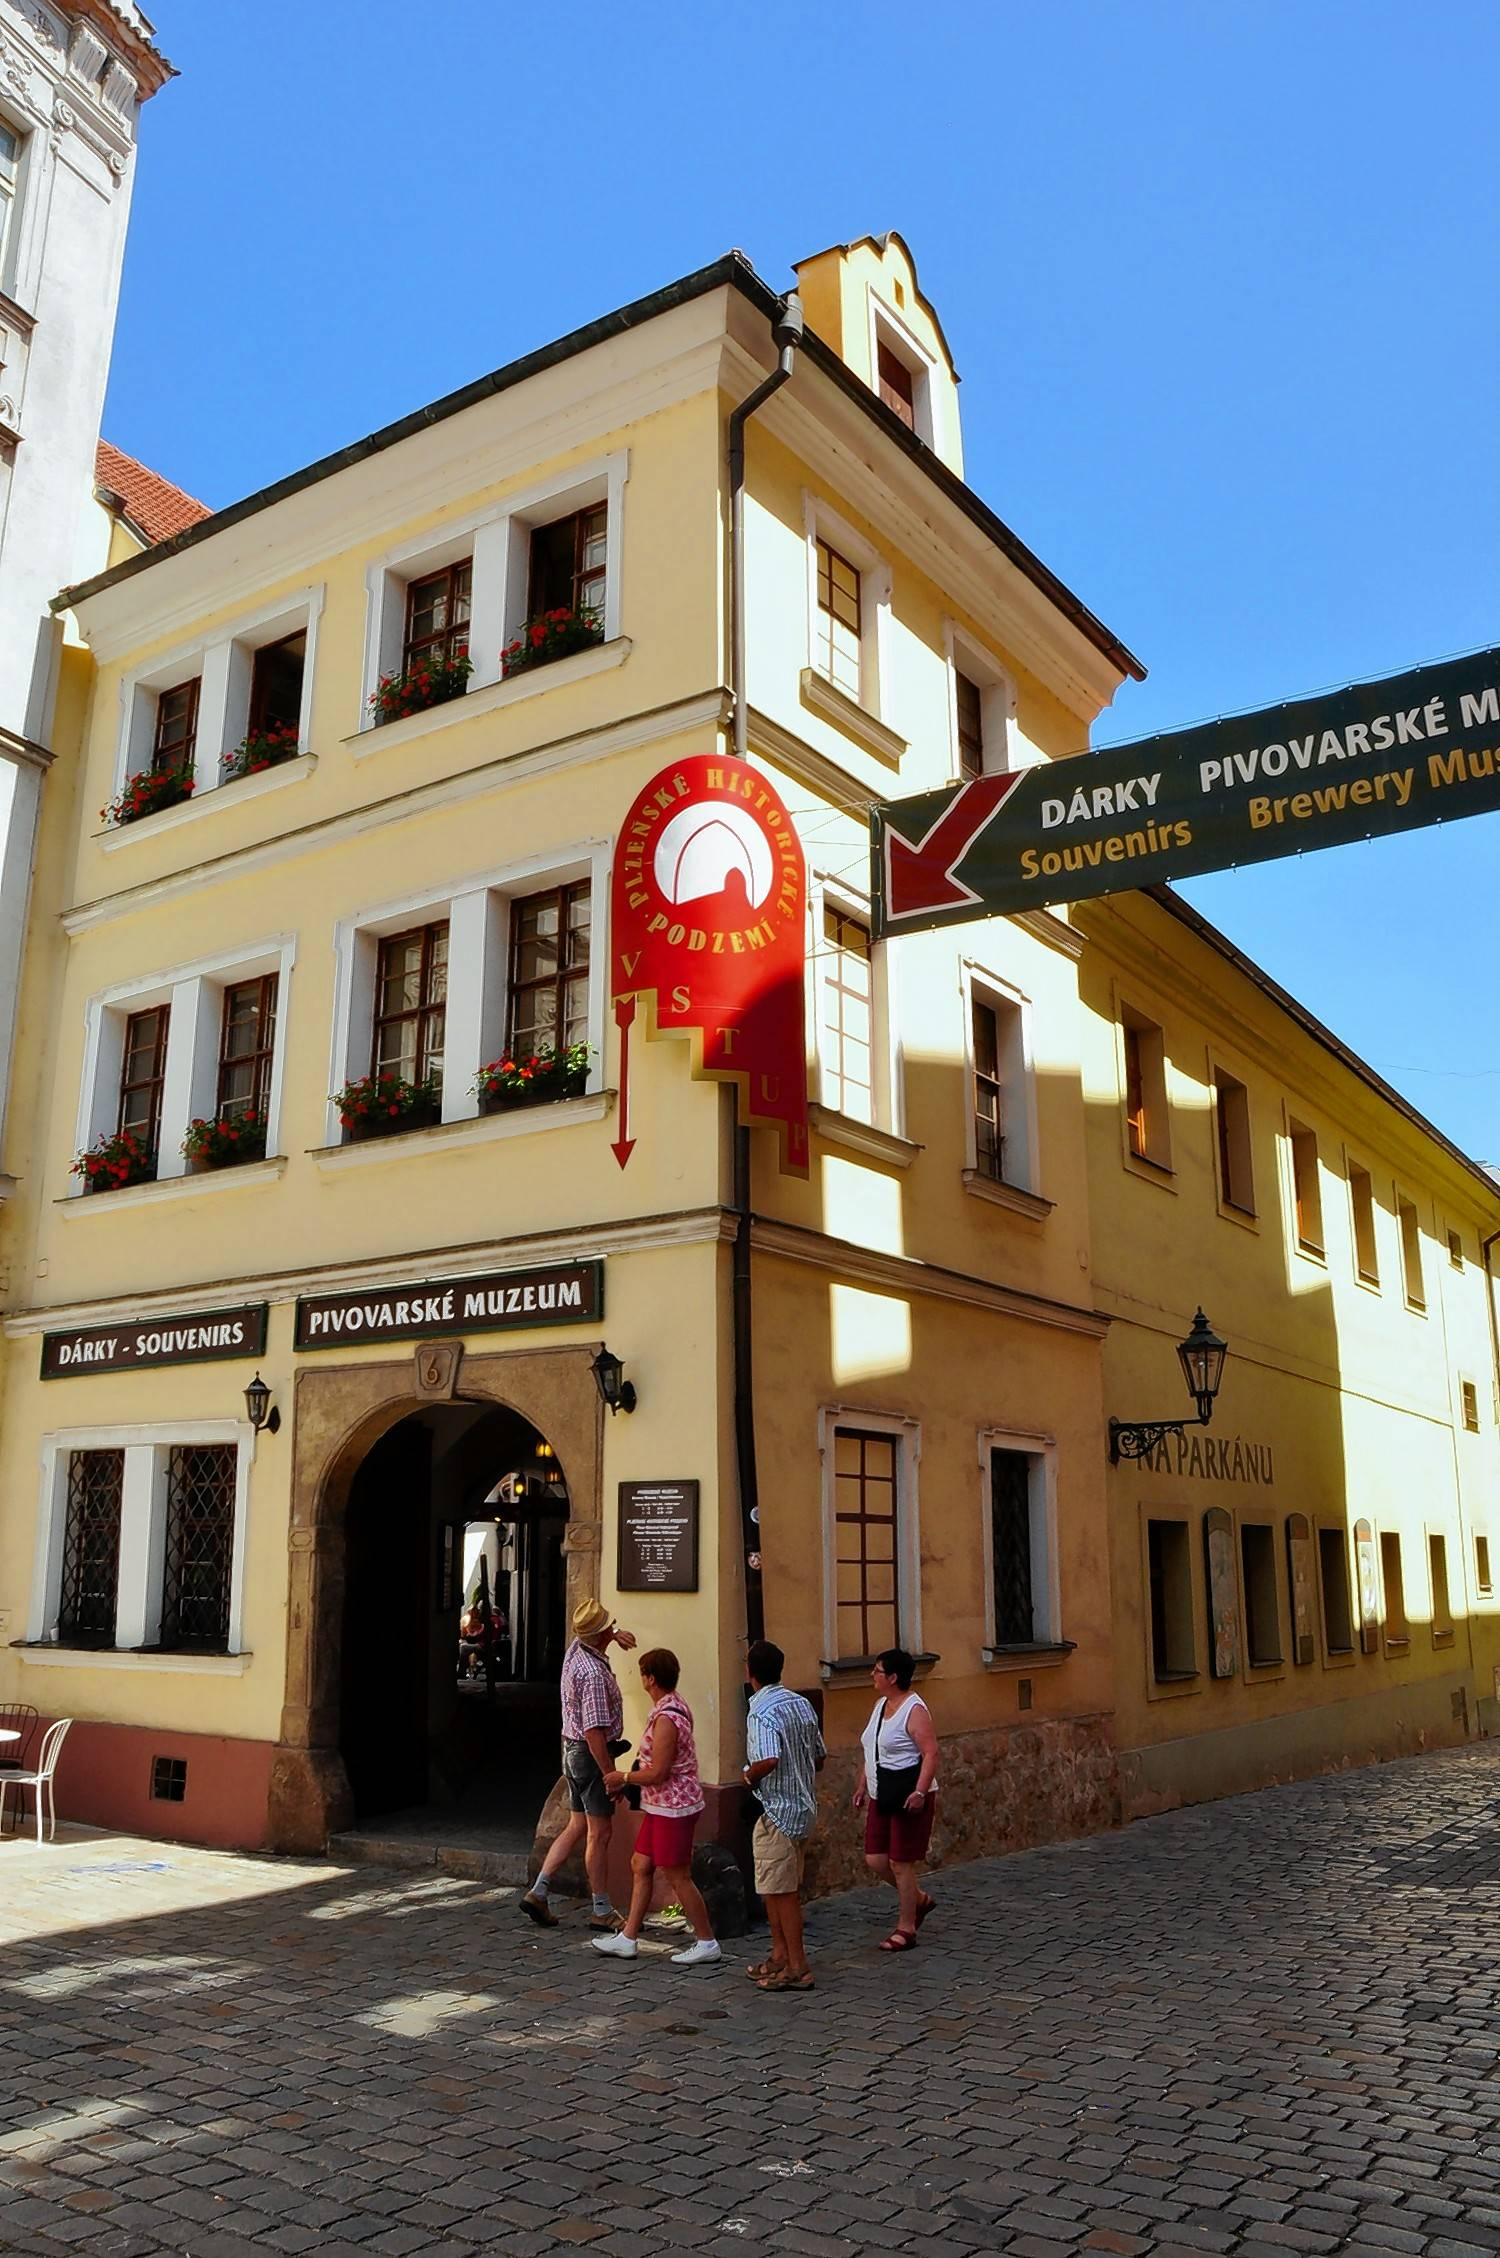 Pilsen's Brewery Museum occupies a 15th-century house a short walk from the Pilsner Urquell Brewery complex.